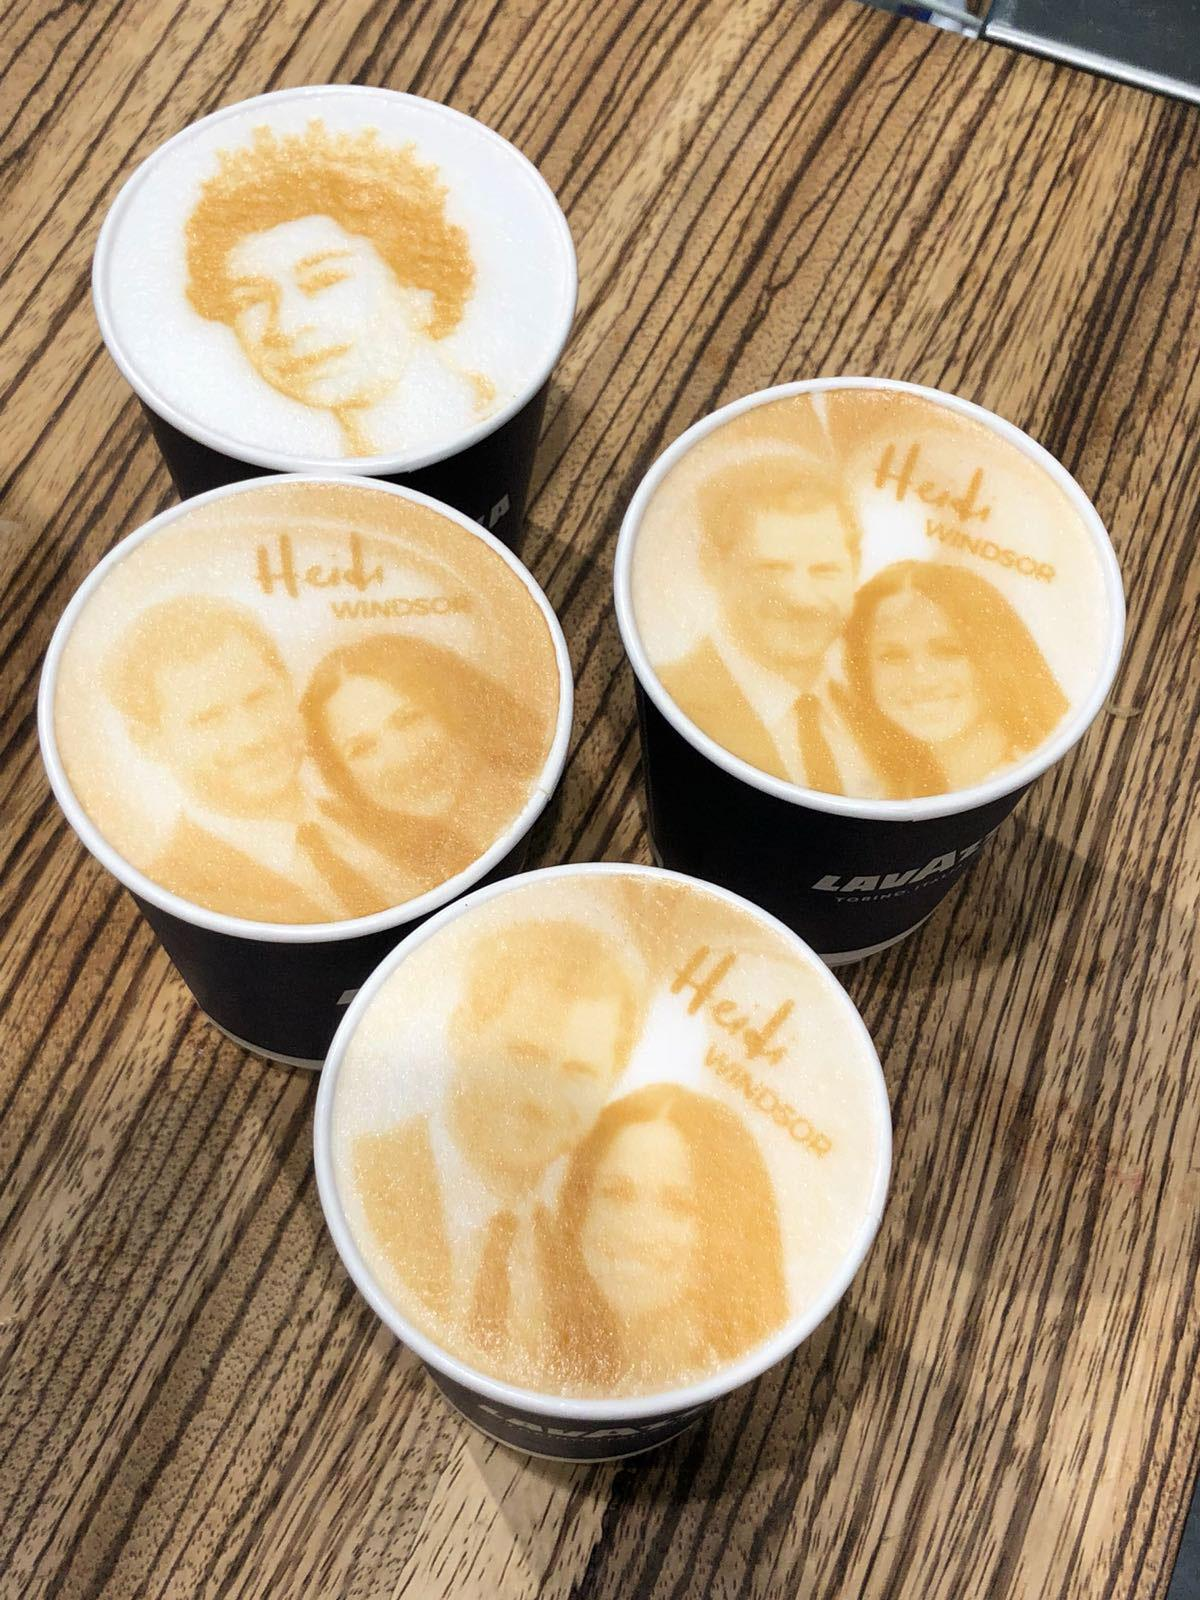 Latte art à l'effigie de la royauté